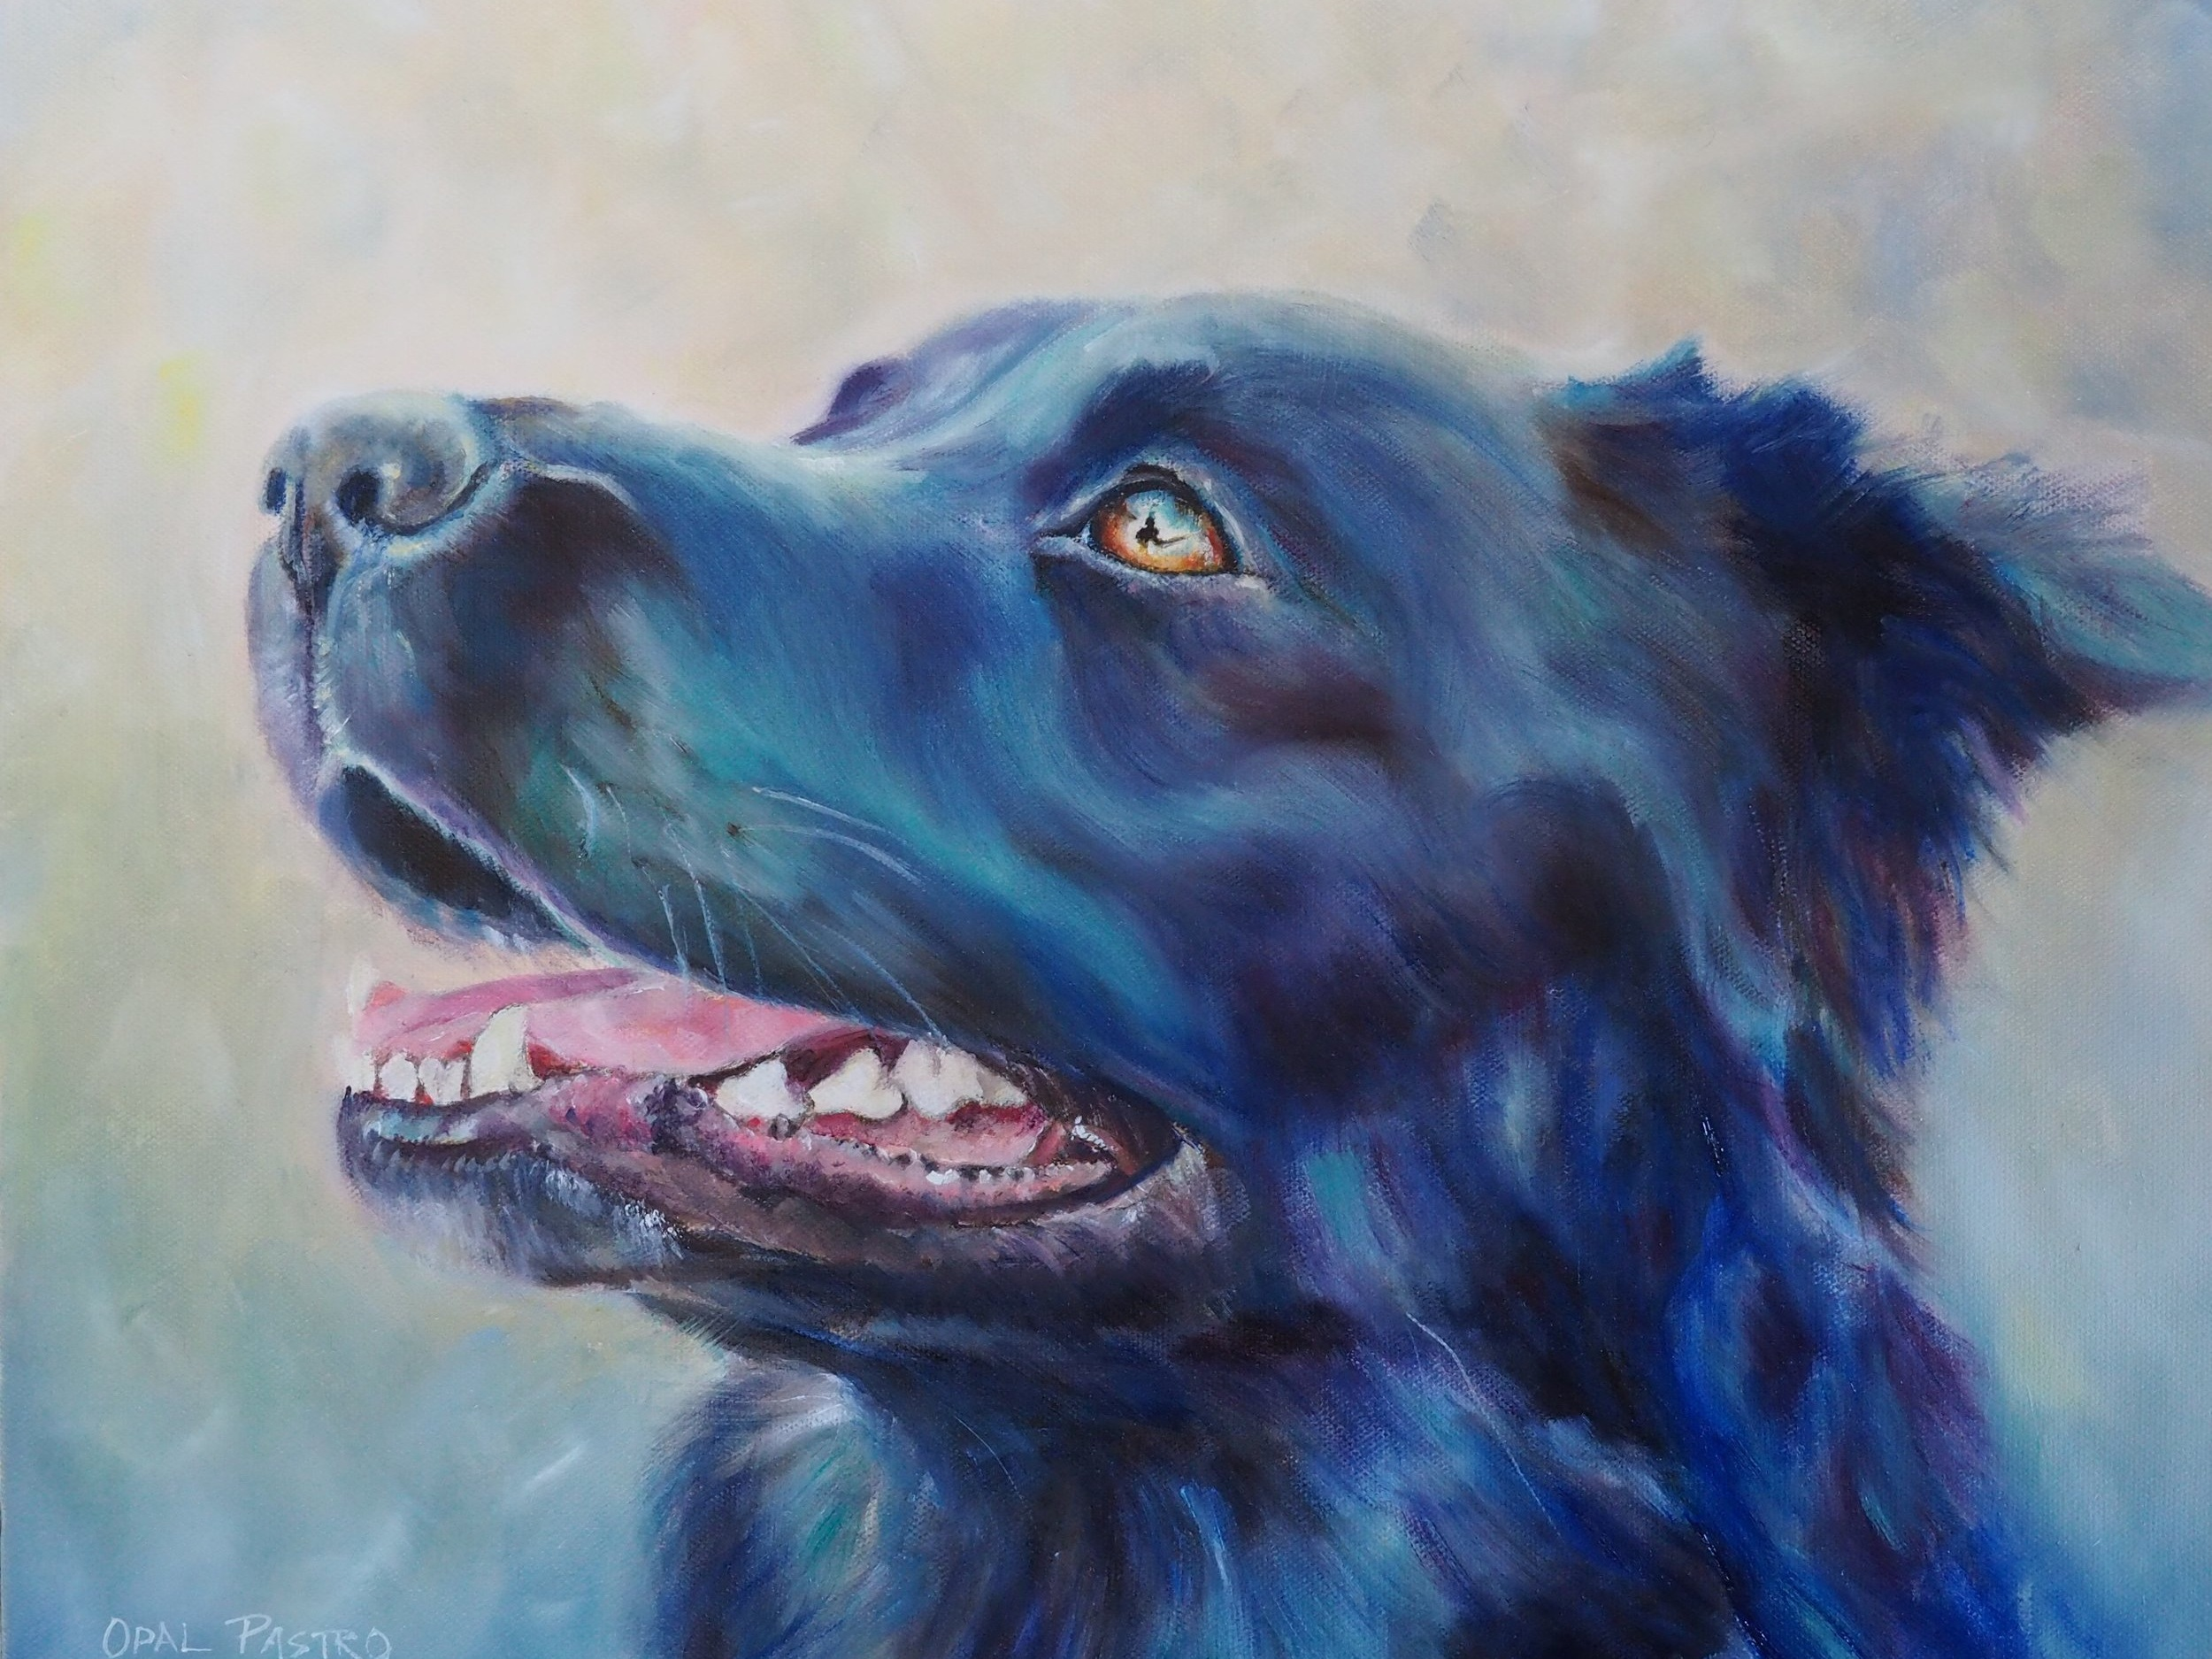 DOG PAINTING HANDPAINTED BLACK KELPIE BY OPAL PASTRO ART